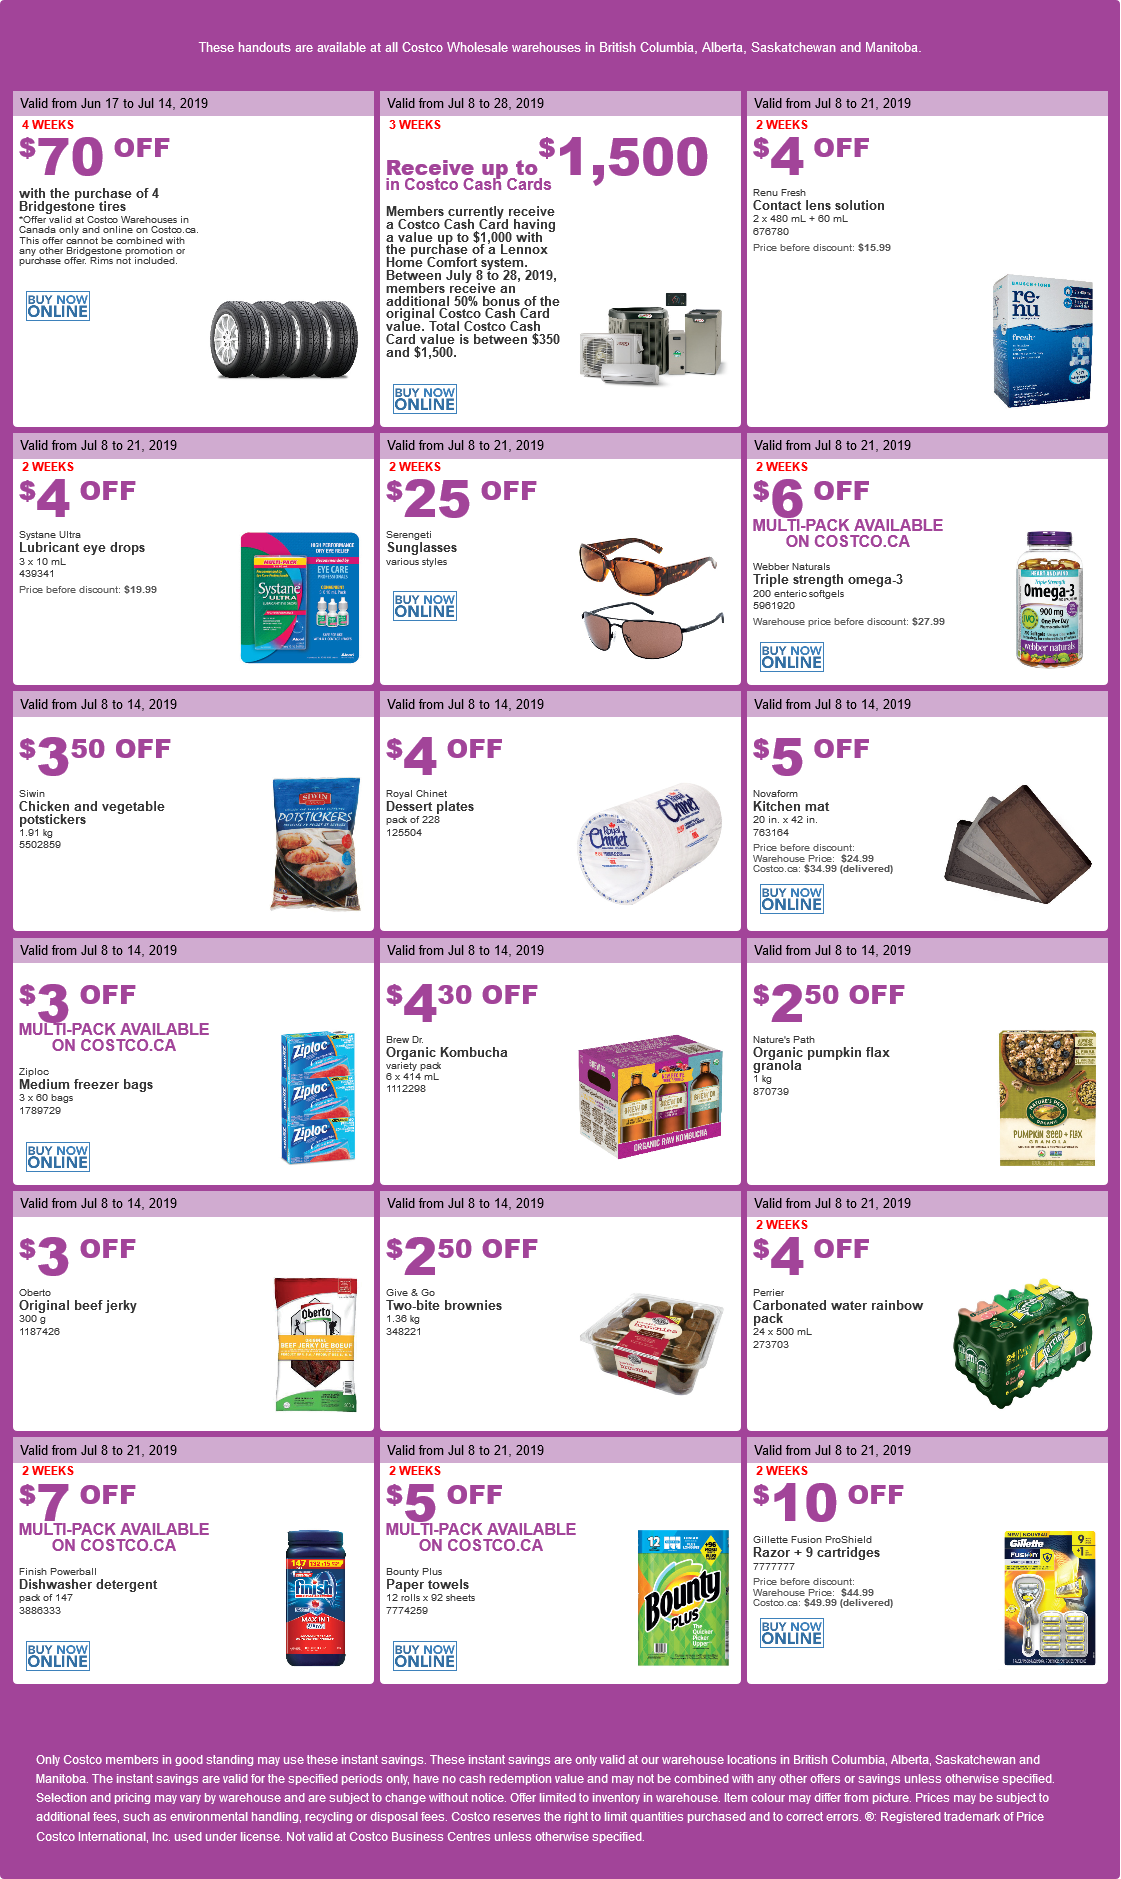 Costco Flyer for July 8-15, 2019 for BC, Alberta, Manitoba, Saskatchewan